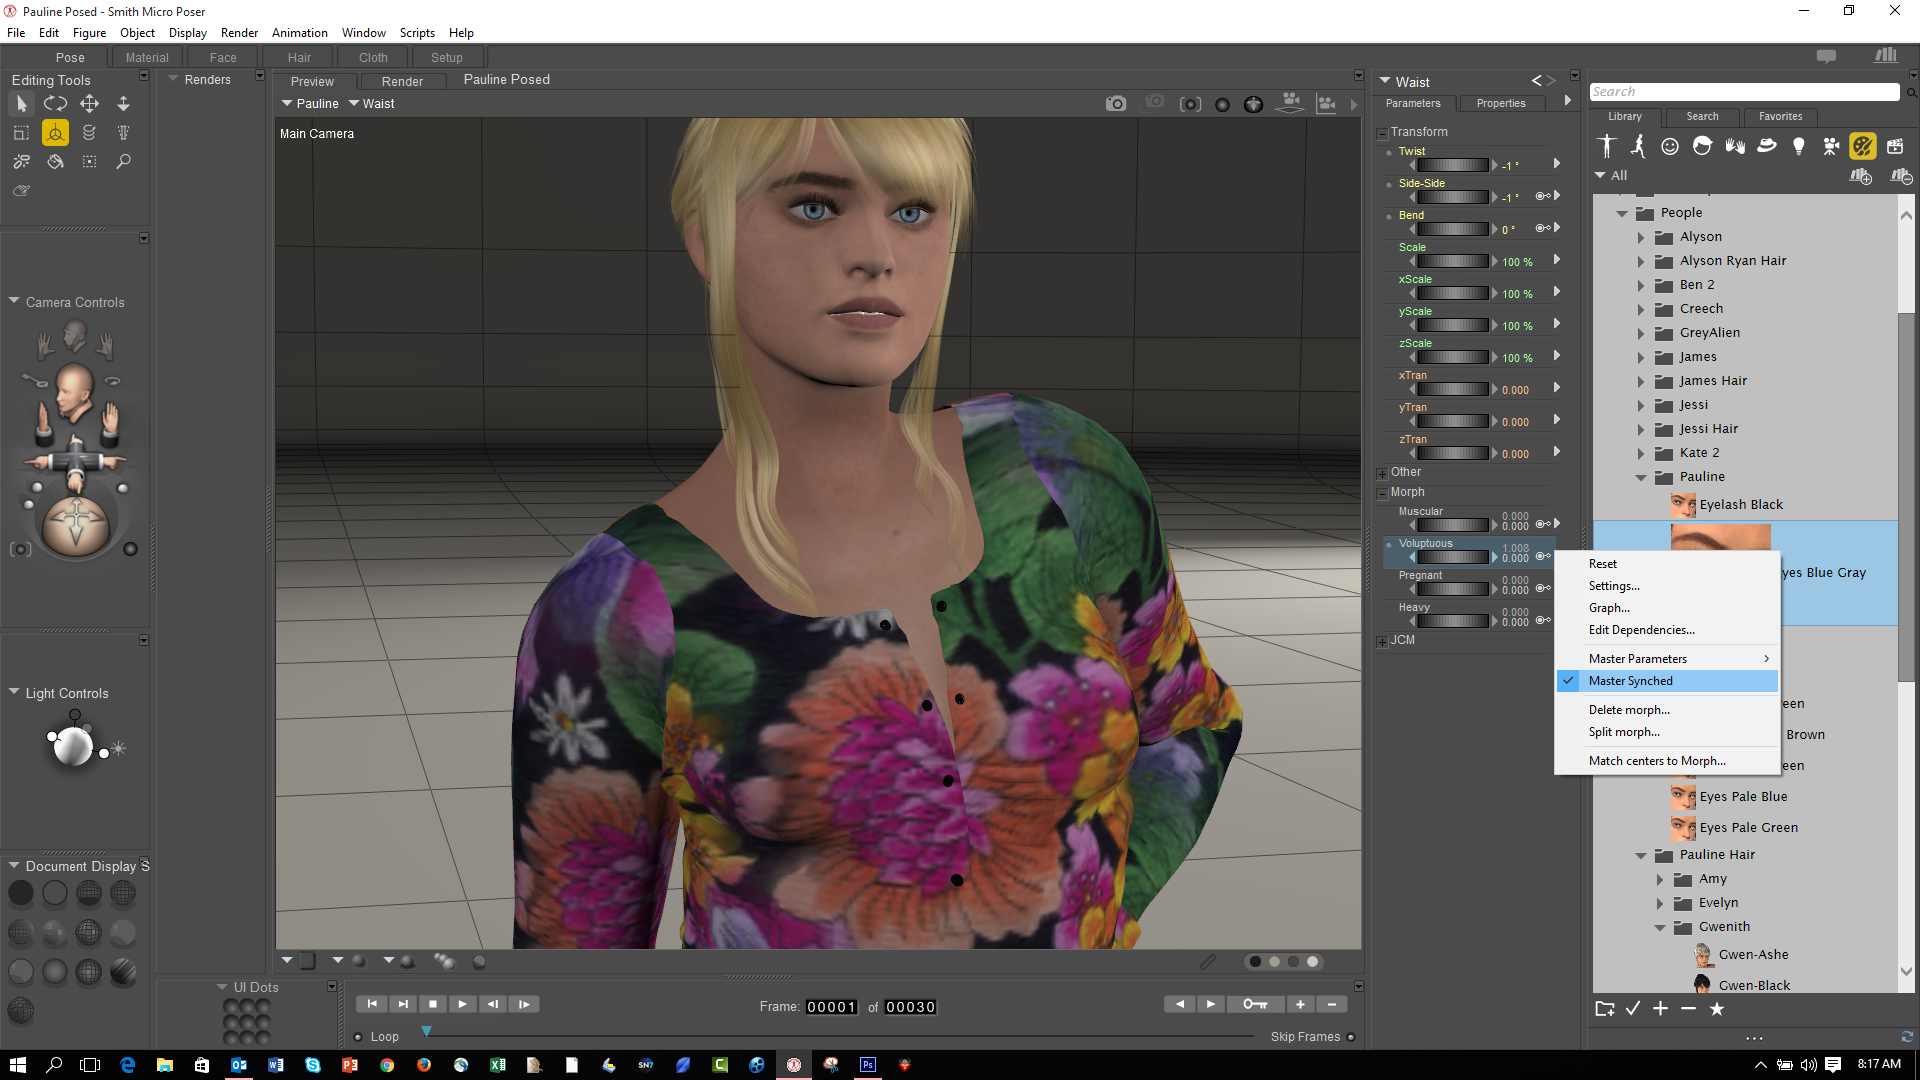 Smith micro poser free download